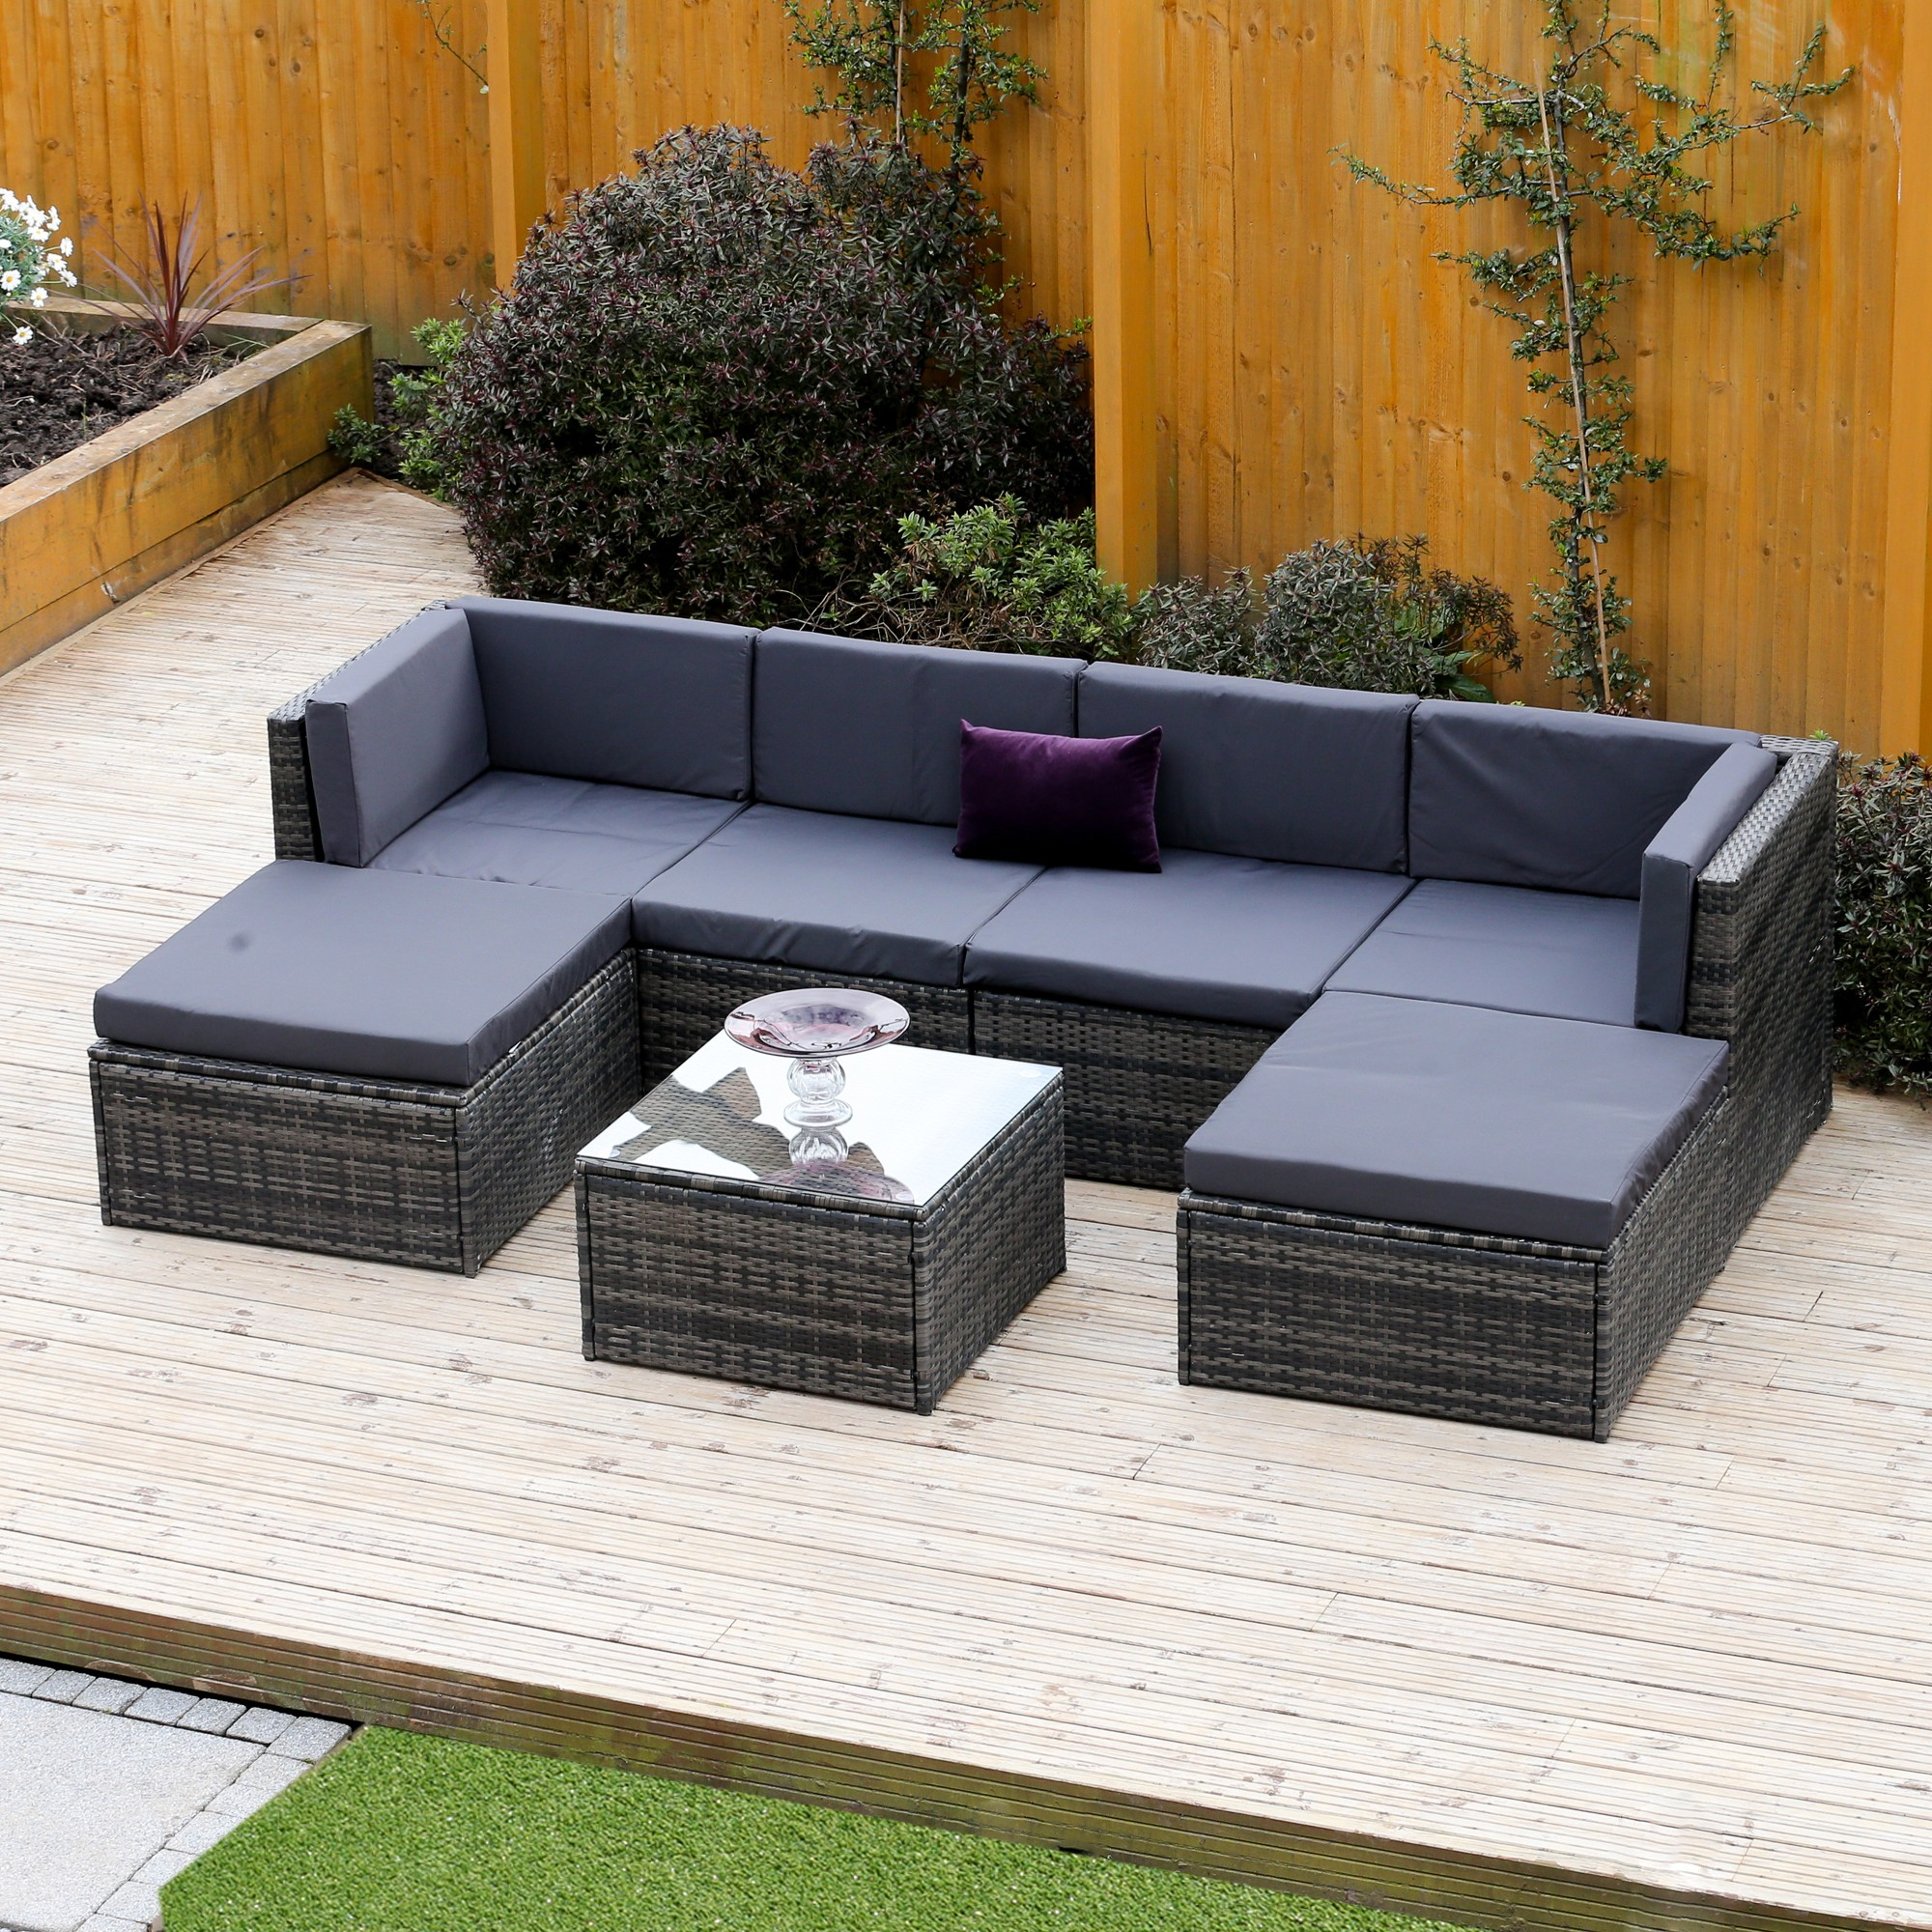 wicker sofa sets uk beds under 200 7 piece acapulco modular rattan corner set in dark mixed grey more views